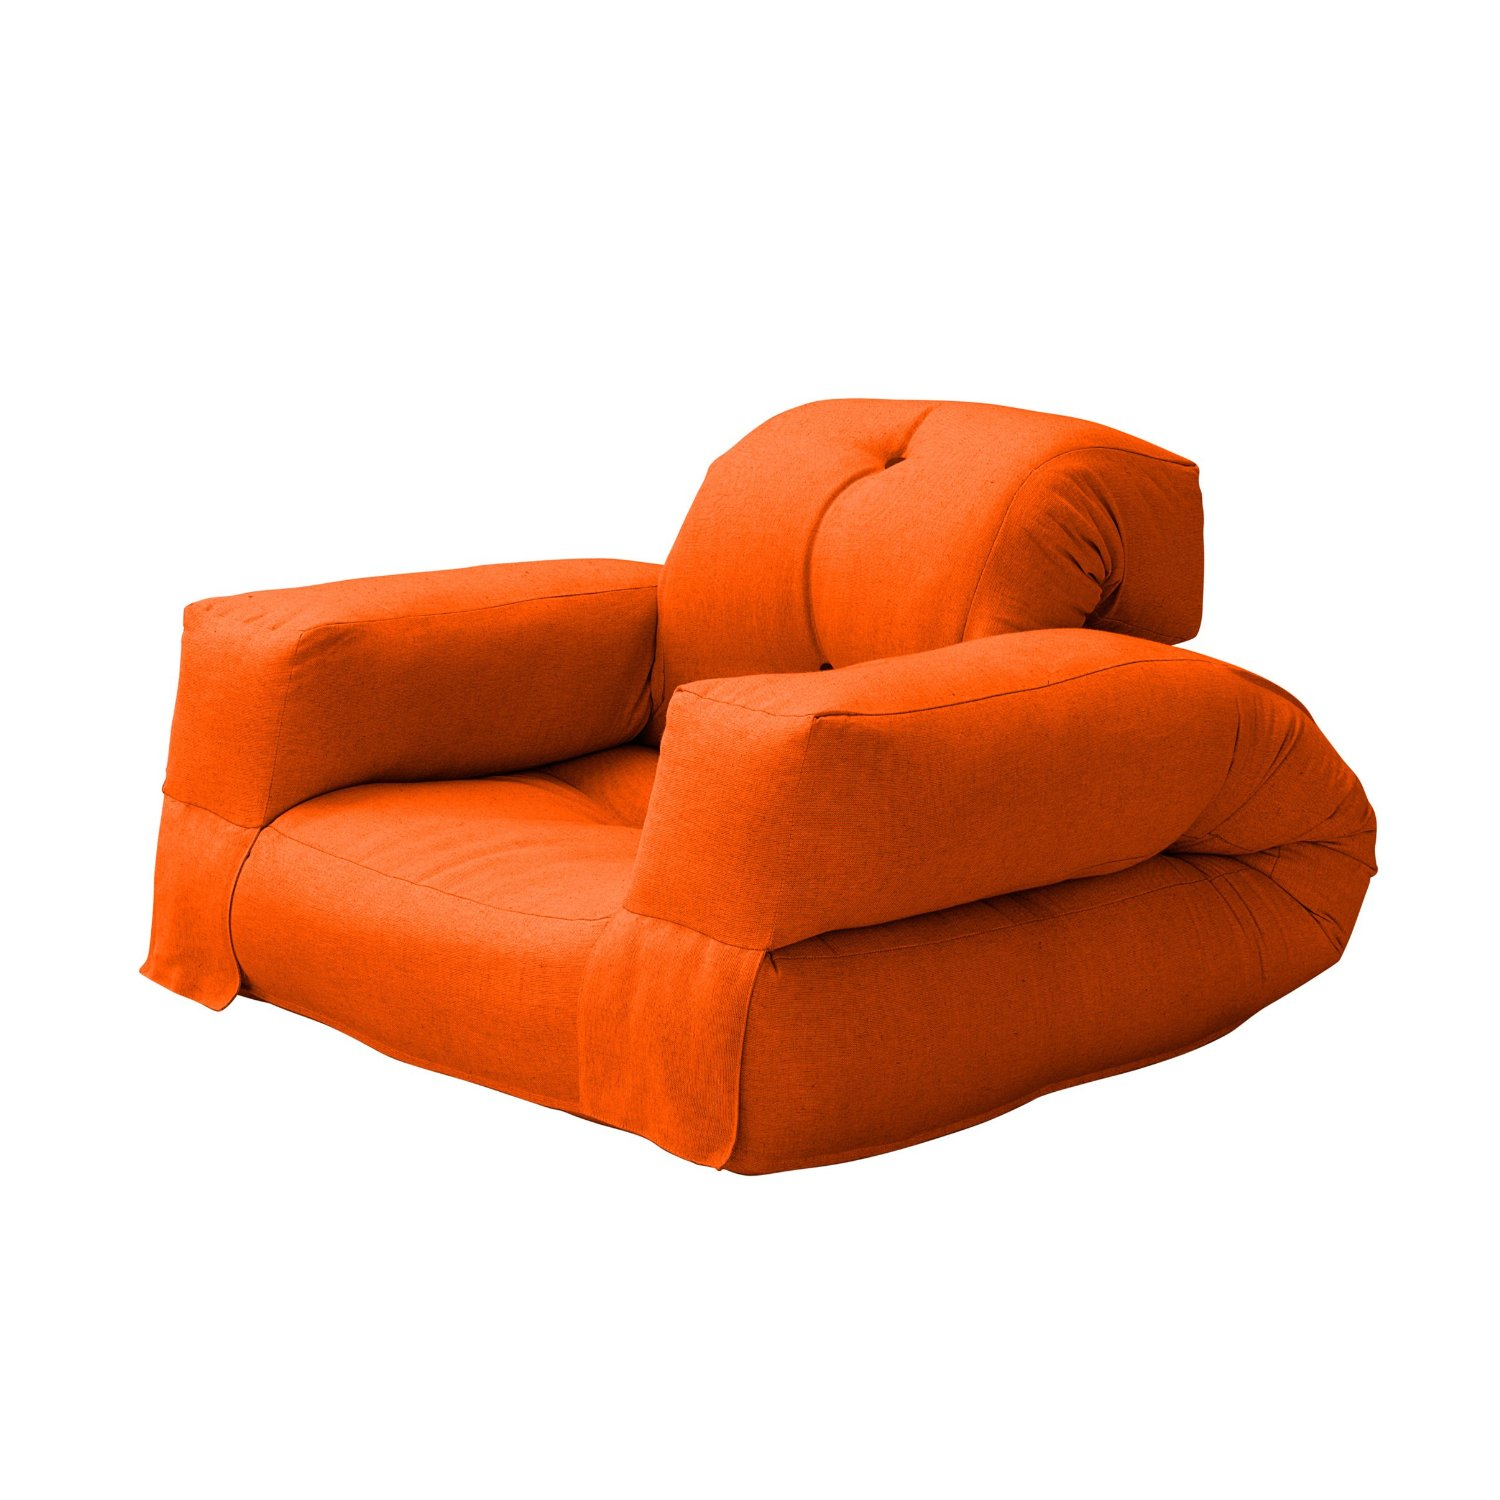 Fresh Futon Hippo Convertible Chair Bed Mattress Orange In Cheap Price On M Alibaba Com